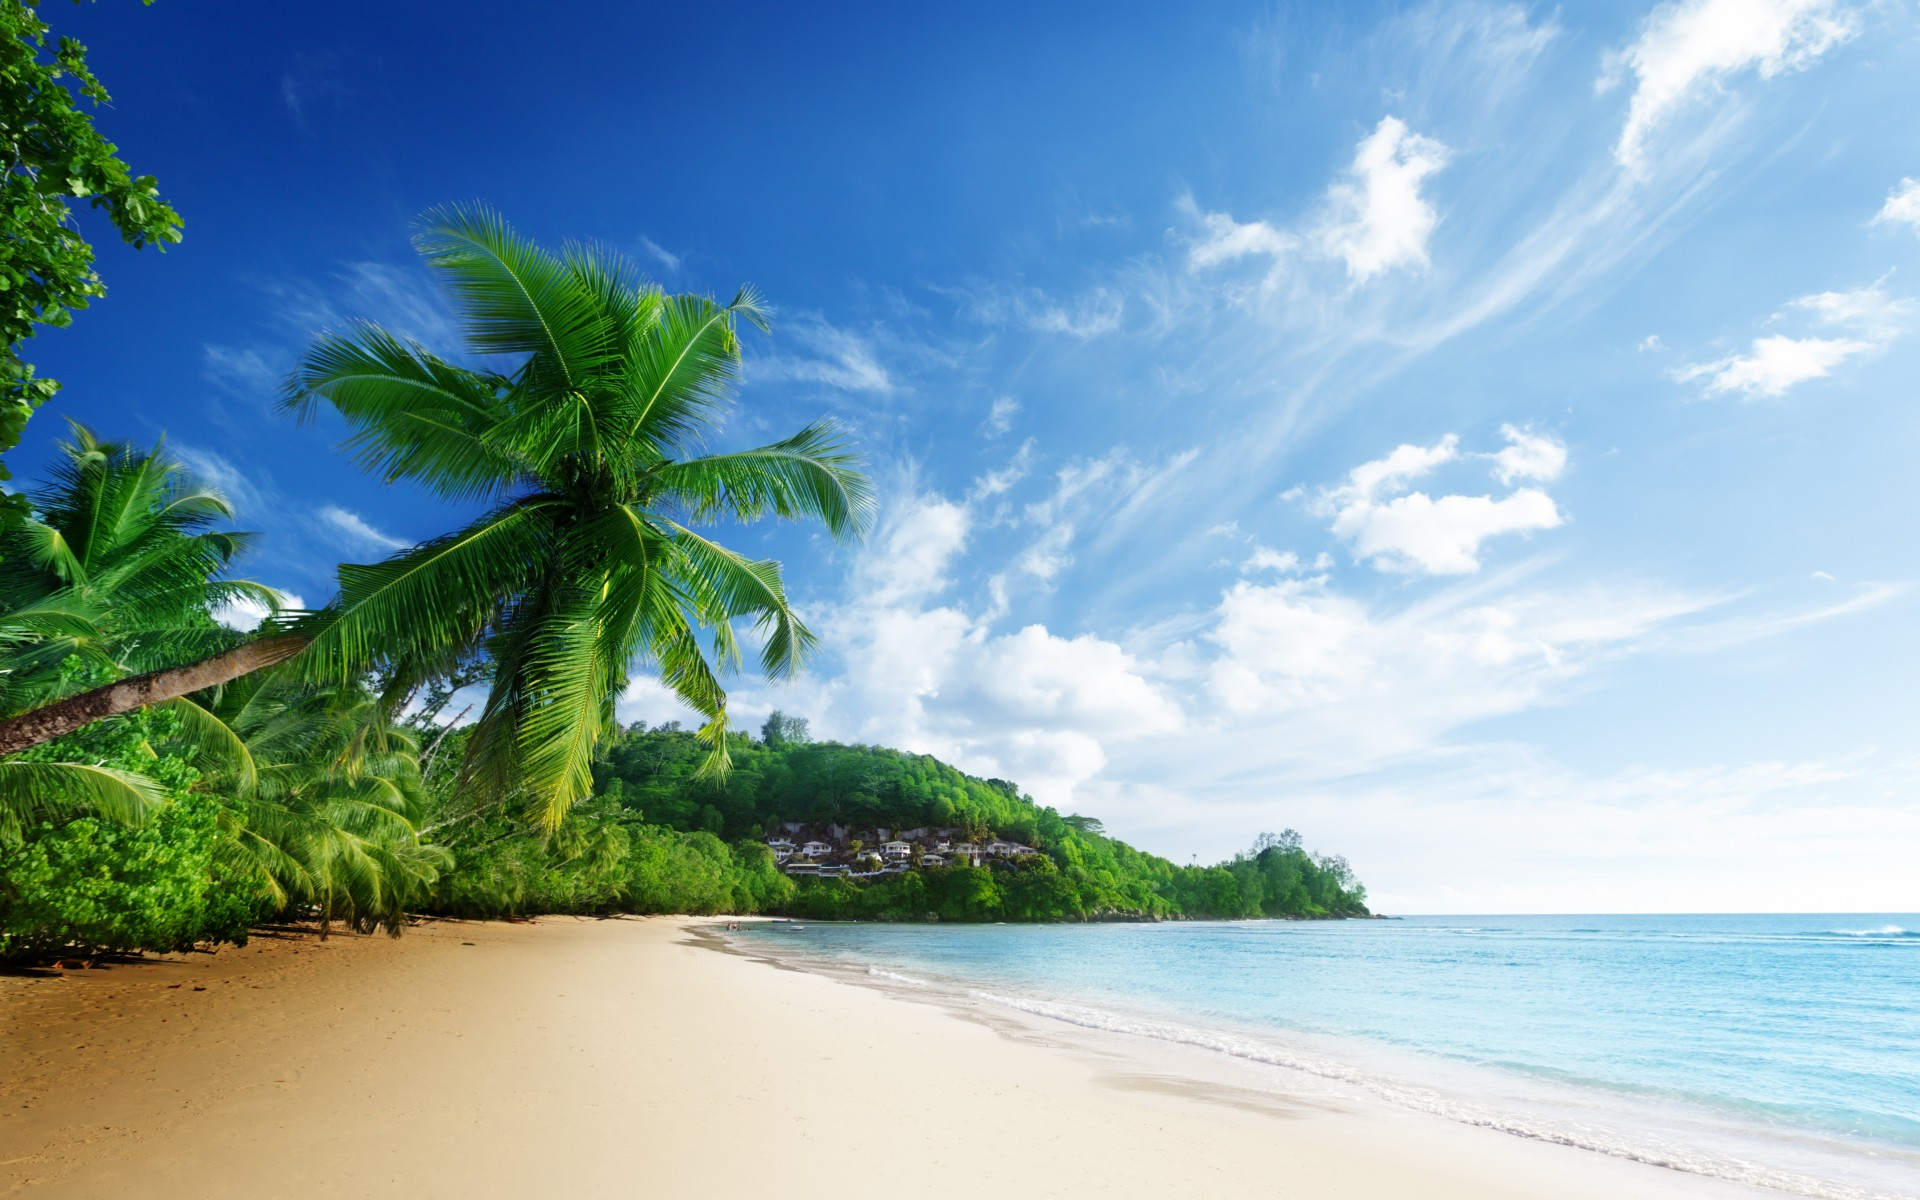 ... sea beach sky clouds palm trees ocean tropical wallpaper background